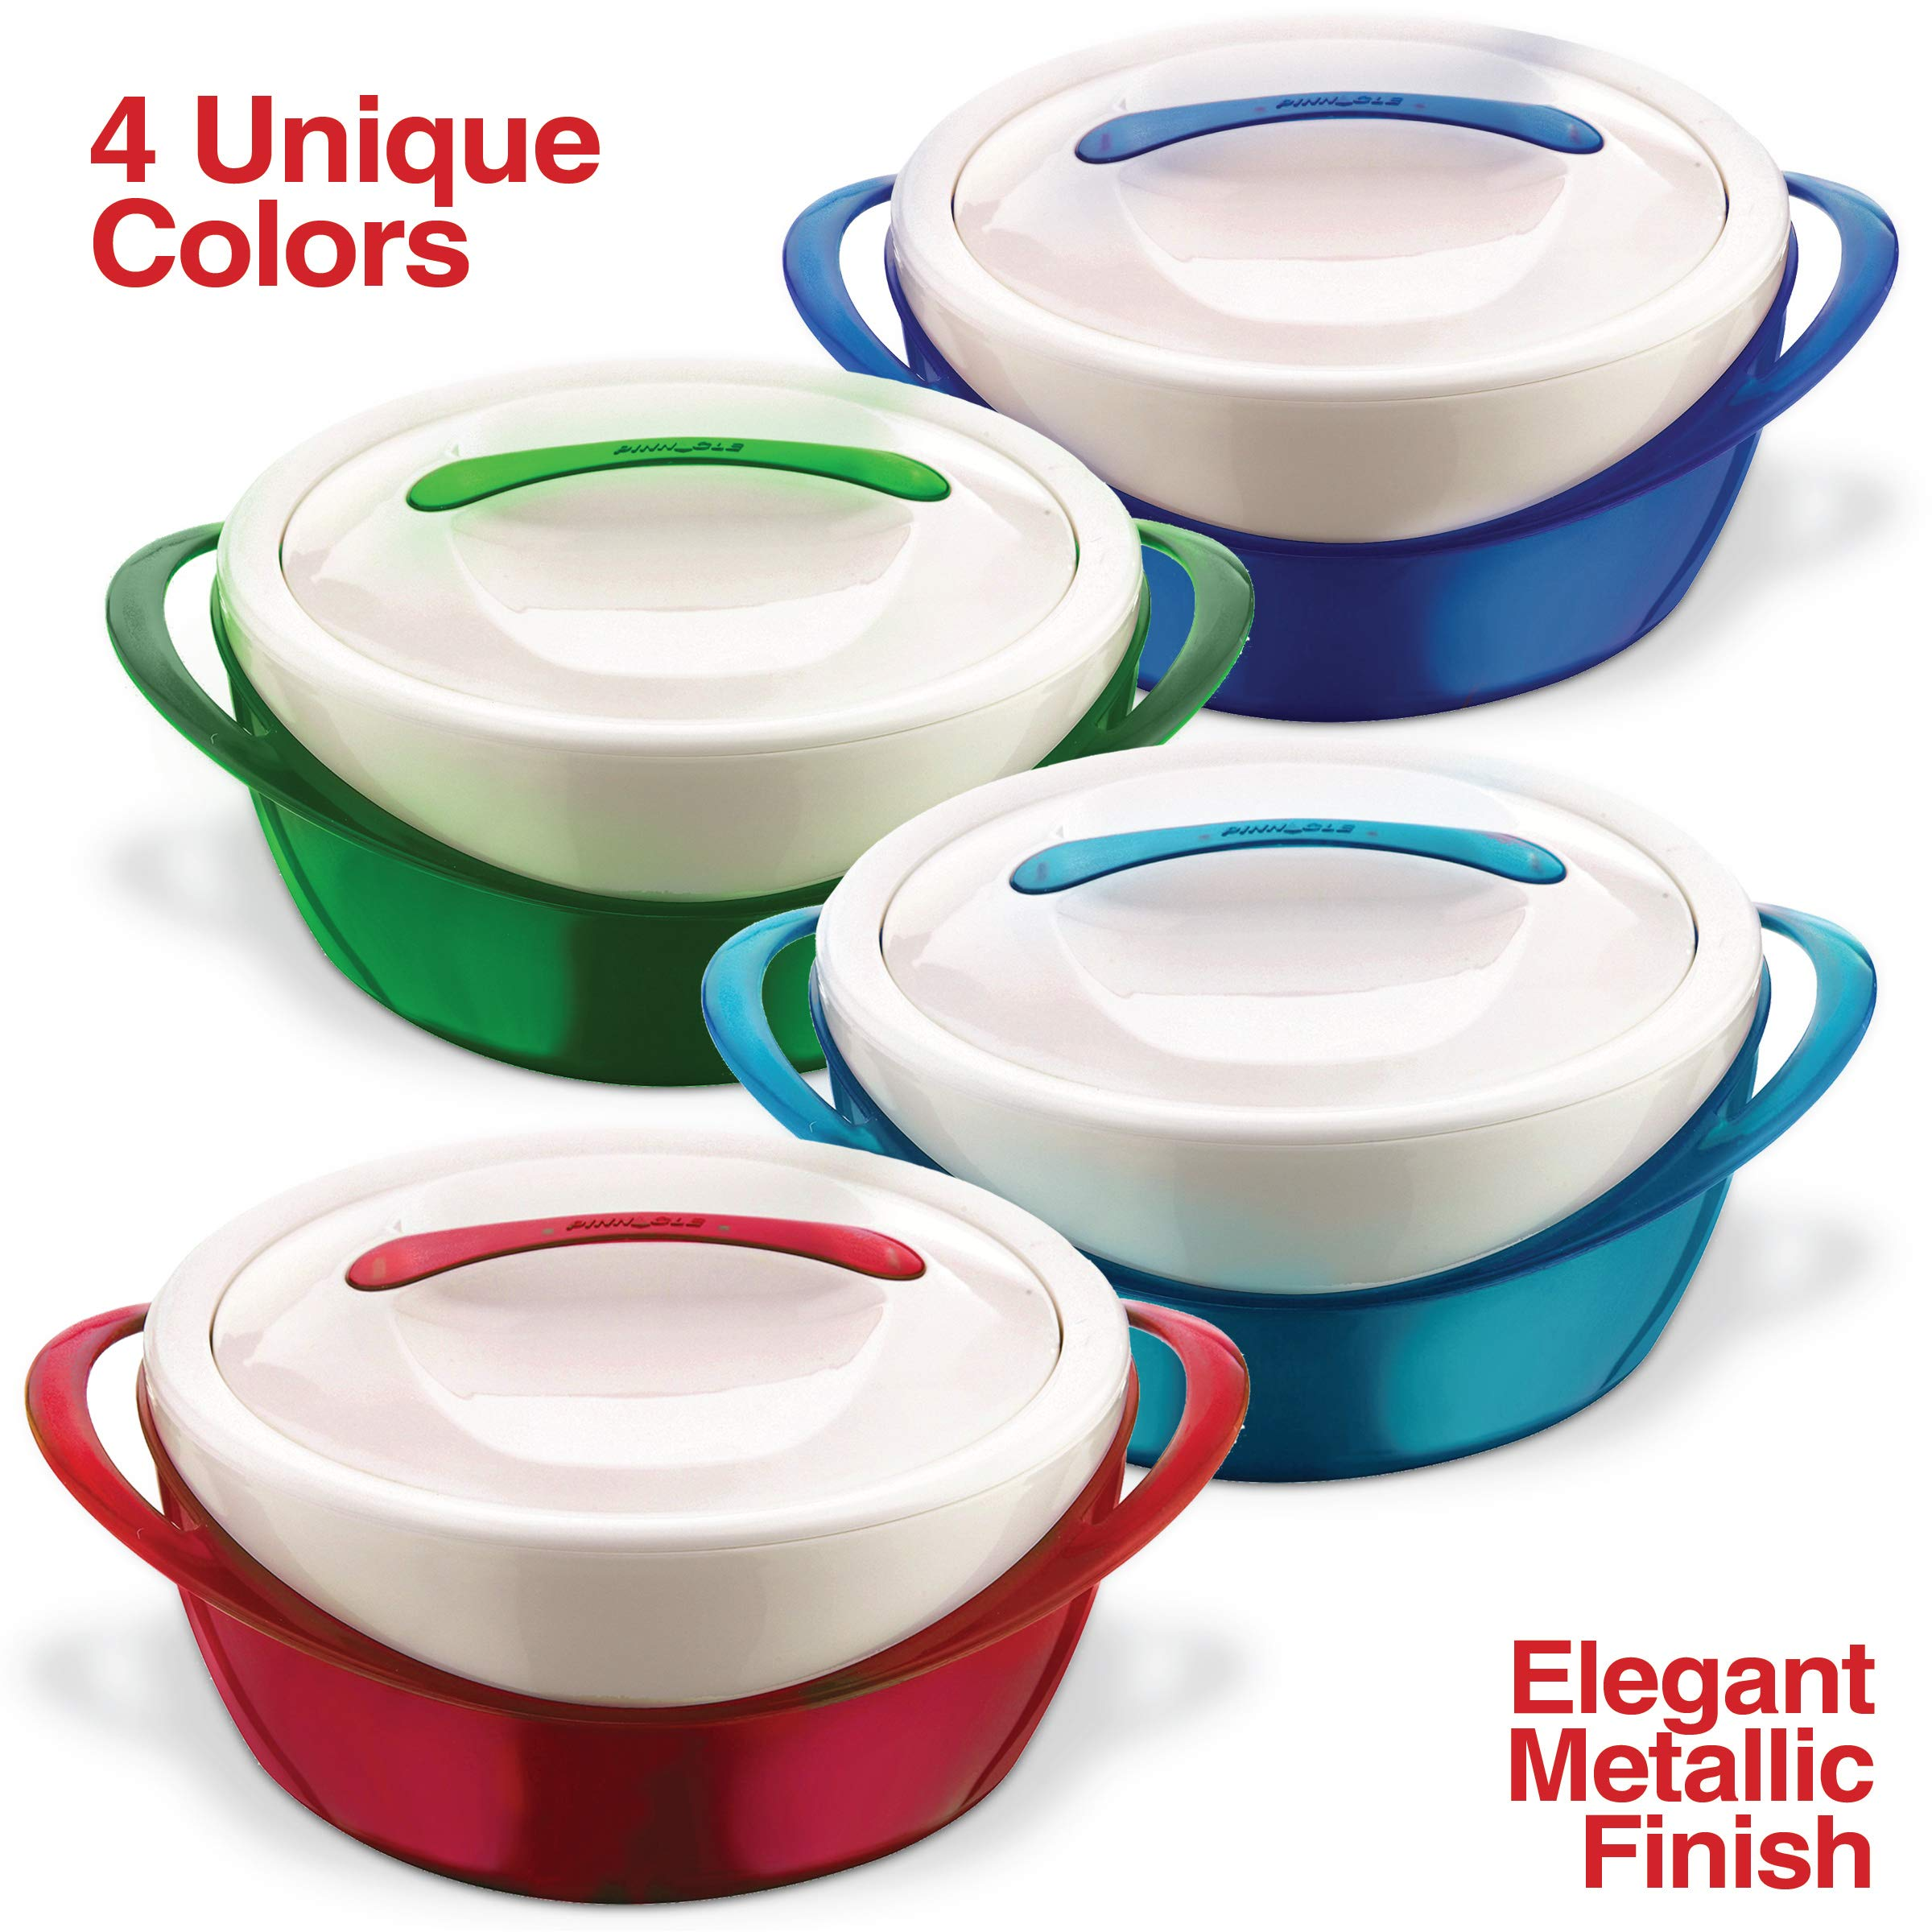 Pinnacle Casserole Dish - Large Soup and Salad Bowl - Insulated Serving Bowl With Lid (3.6 qt, Blue) by Pinnacle Thermoware (Image #4)